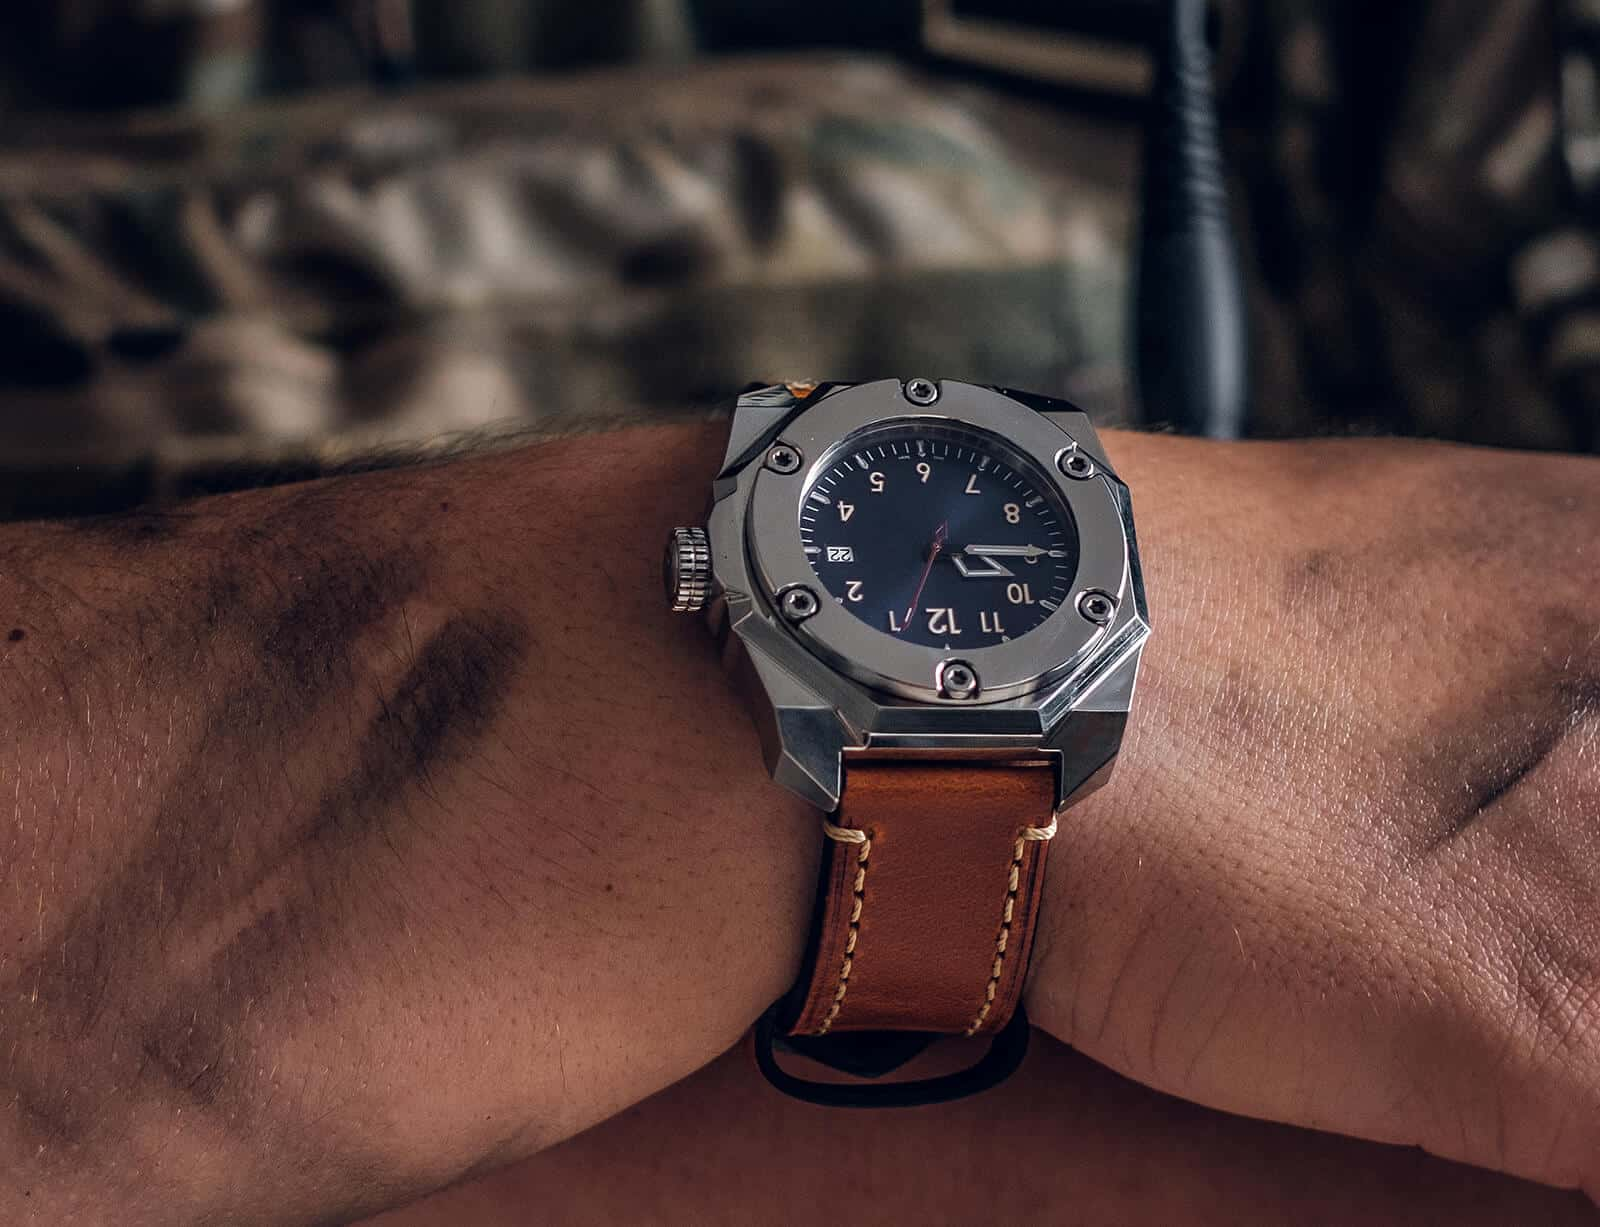 The 20 Best, Toughest and Most Capable Military Watches